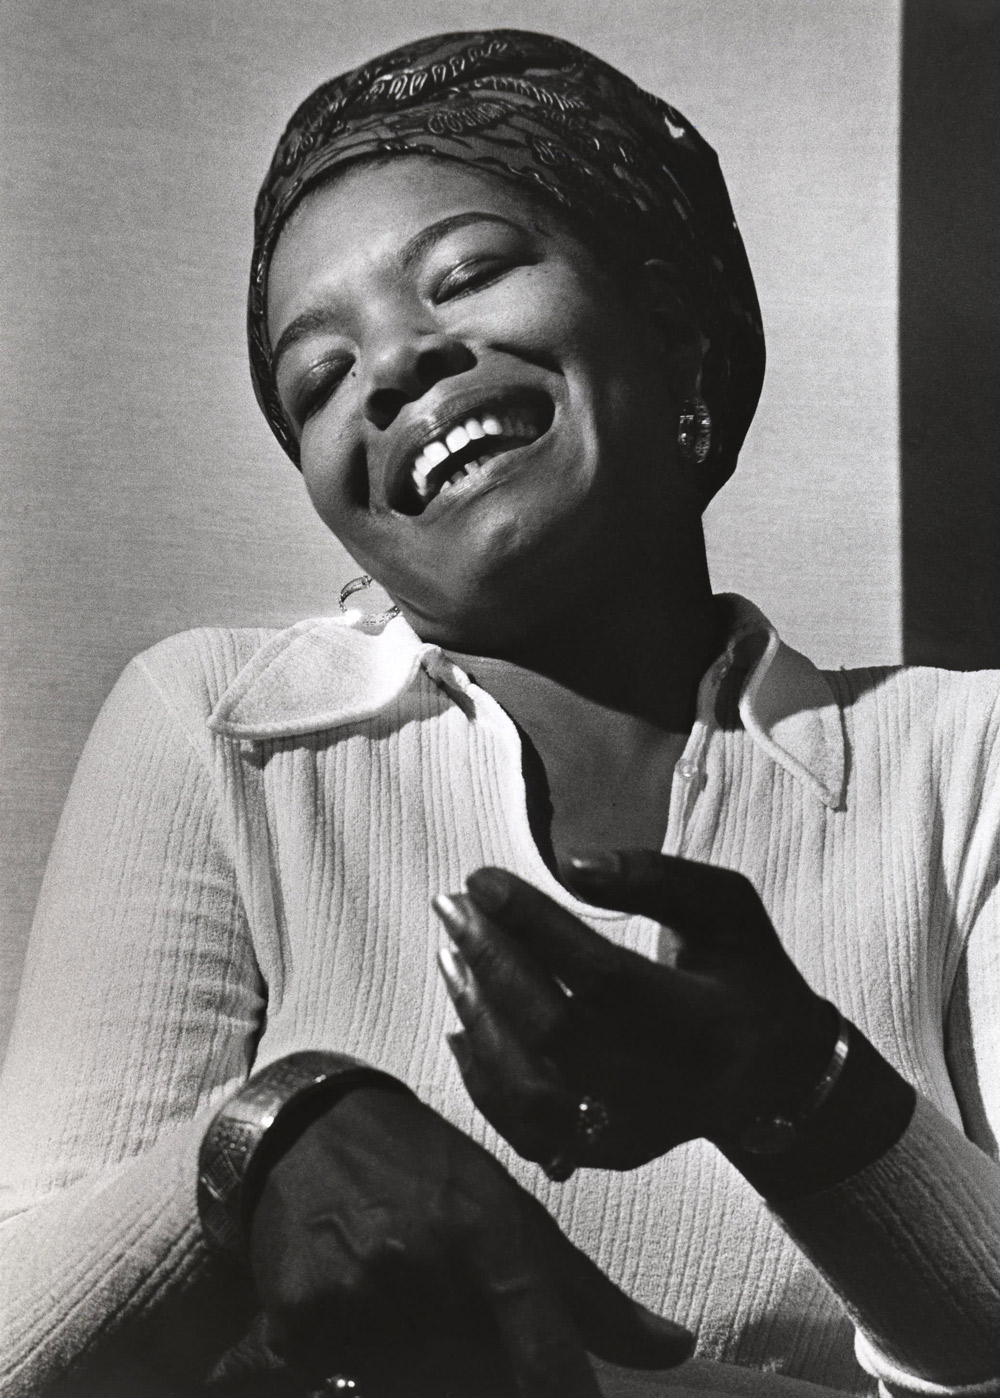 maya angelou a woman of hope Her poetry and prose inspired generations with messages of hope and harmony her poise and gracefulness, the very definition of a phenomenal woman as we say goodbye to dr maya angelou.